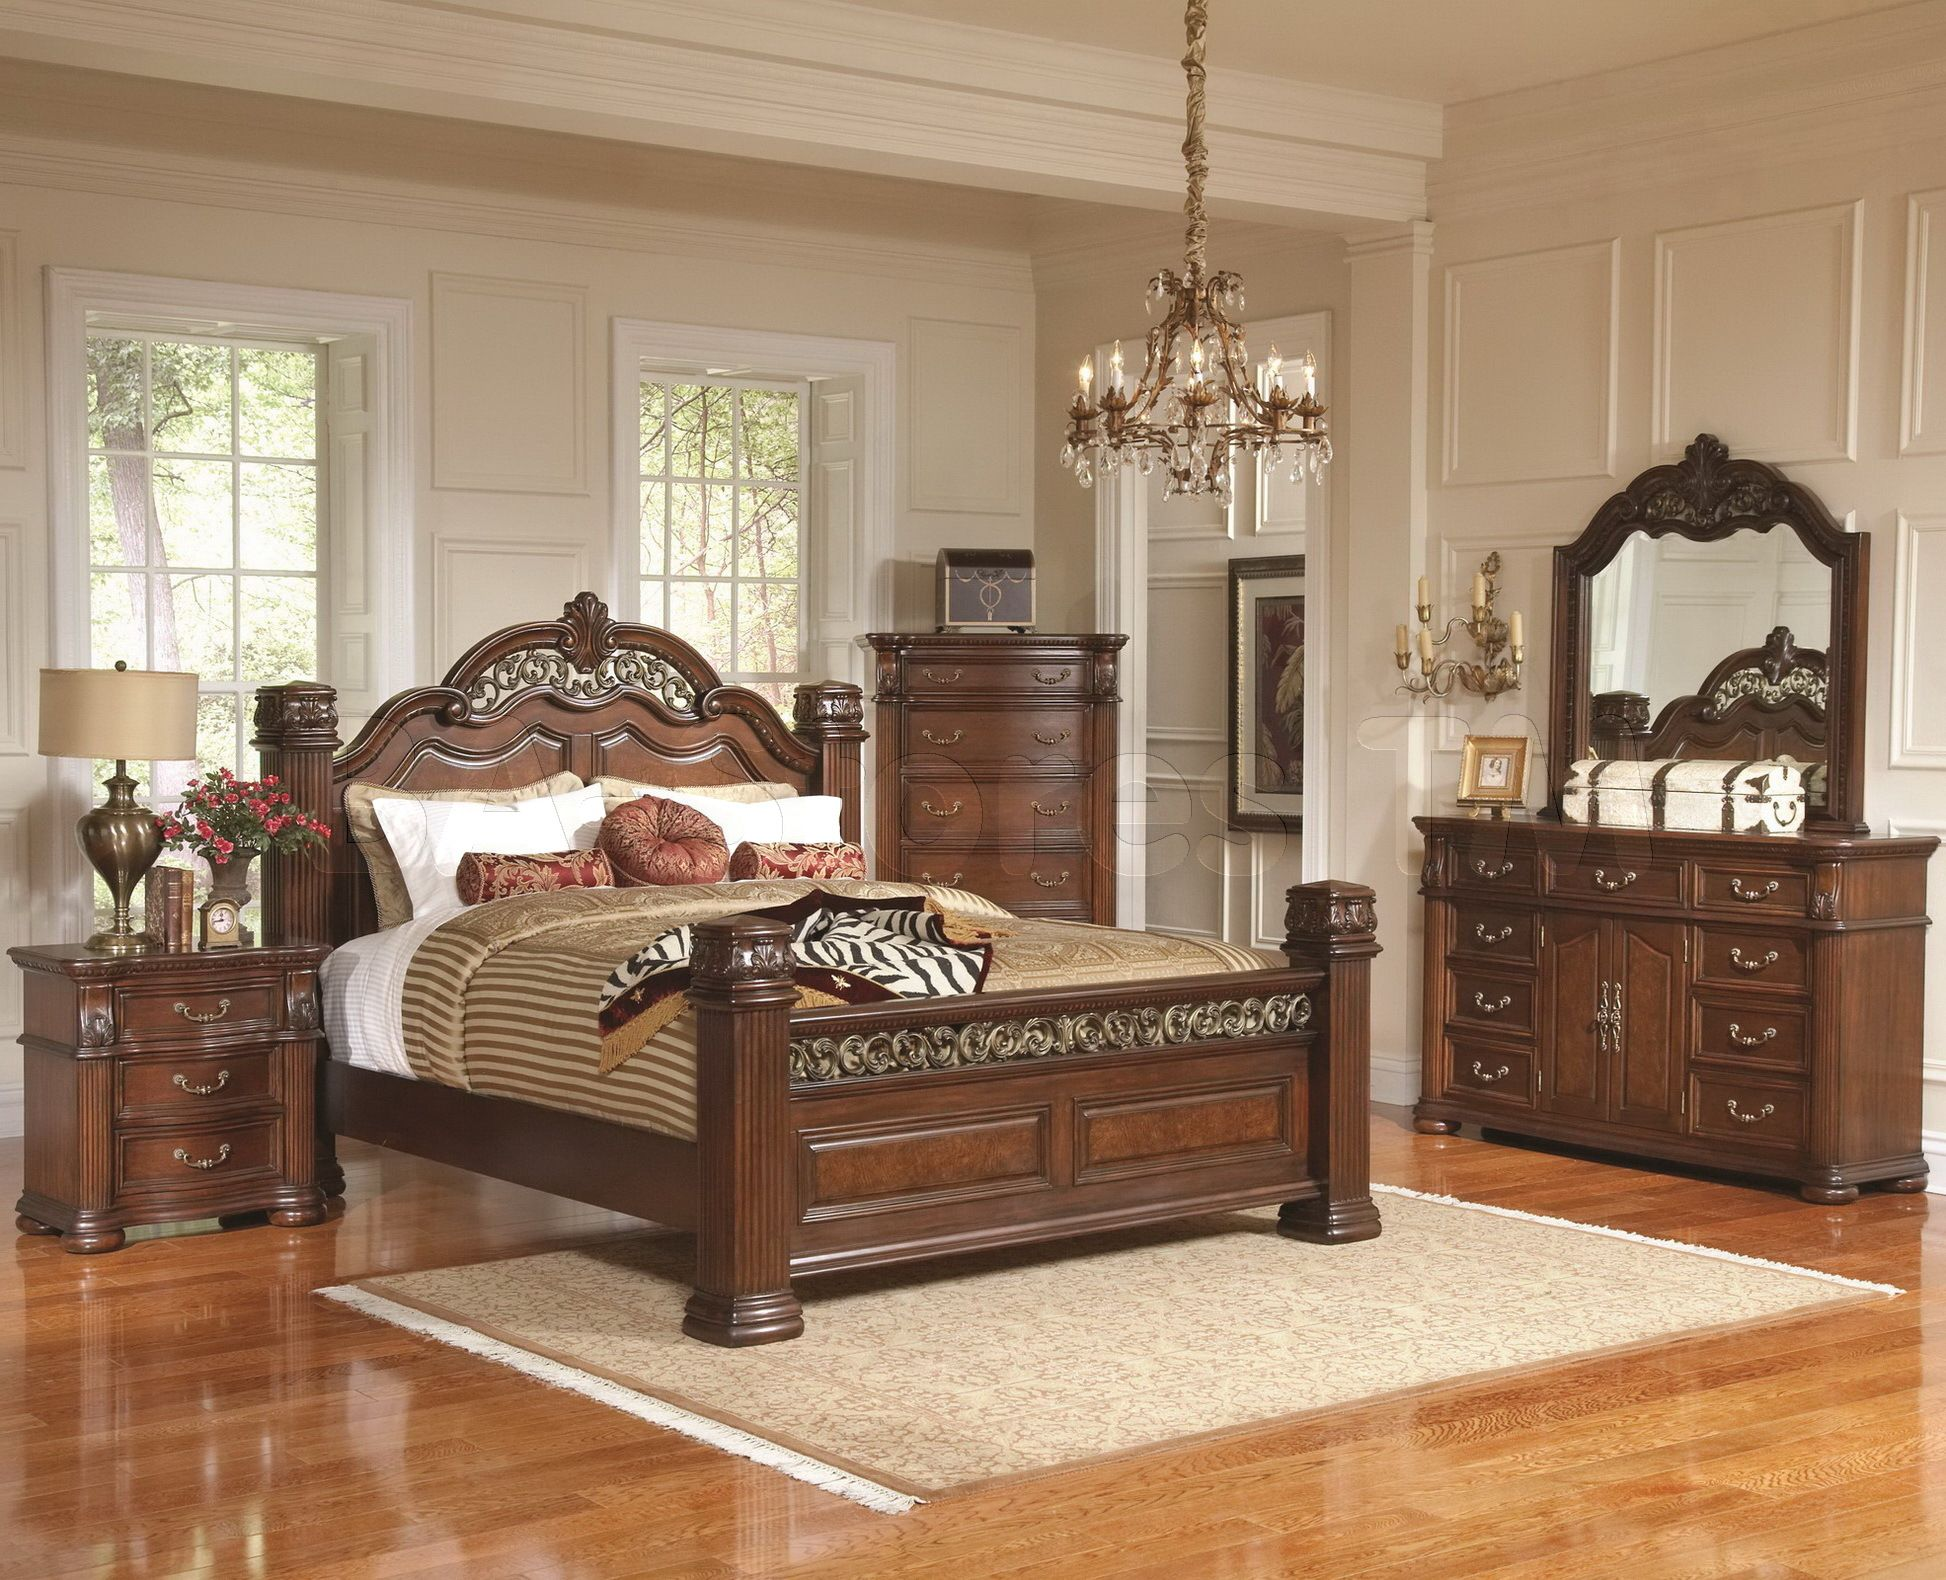 Wood flooring ides with hardwood floors midcityeast for Bedroom wood designs